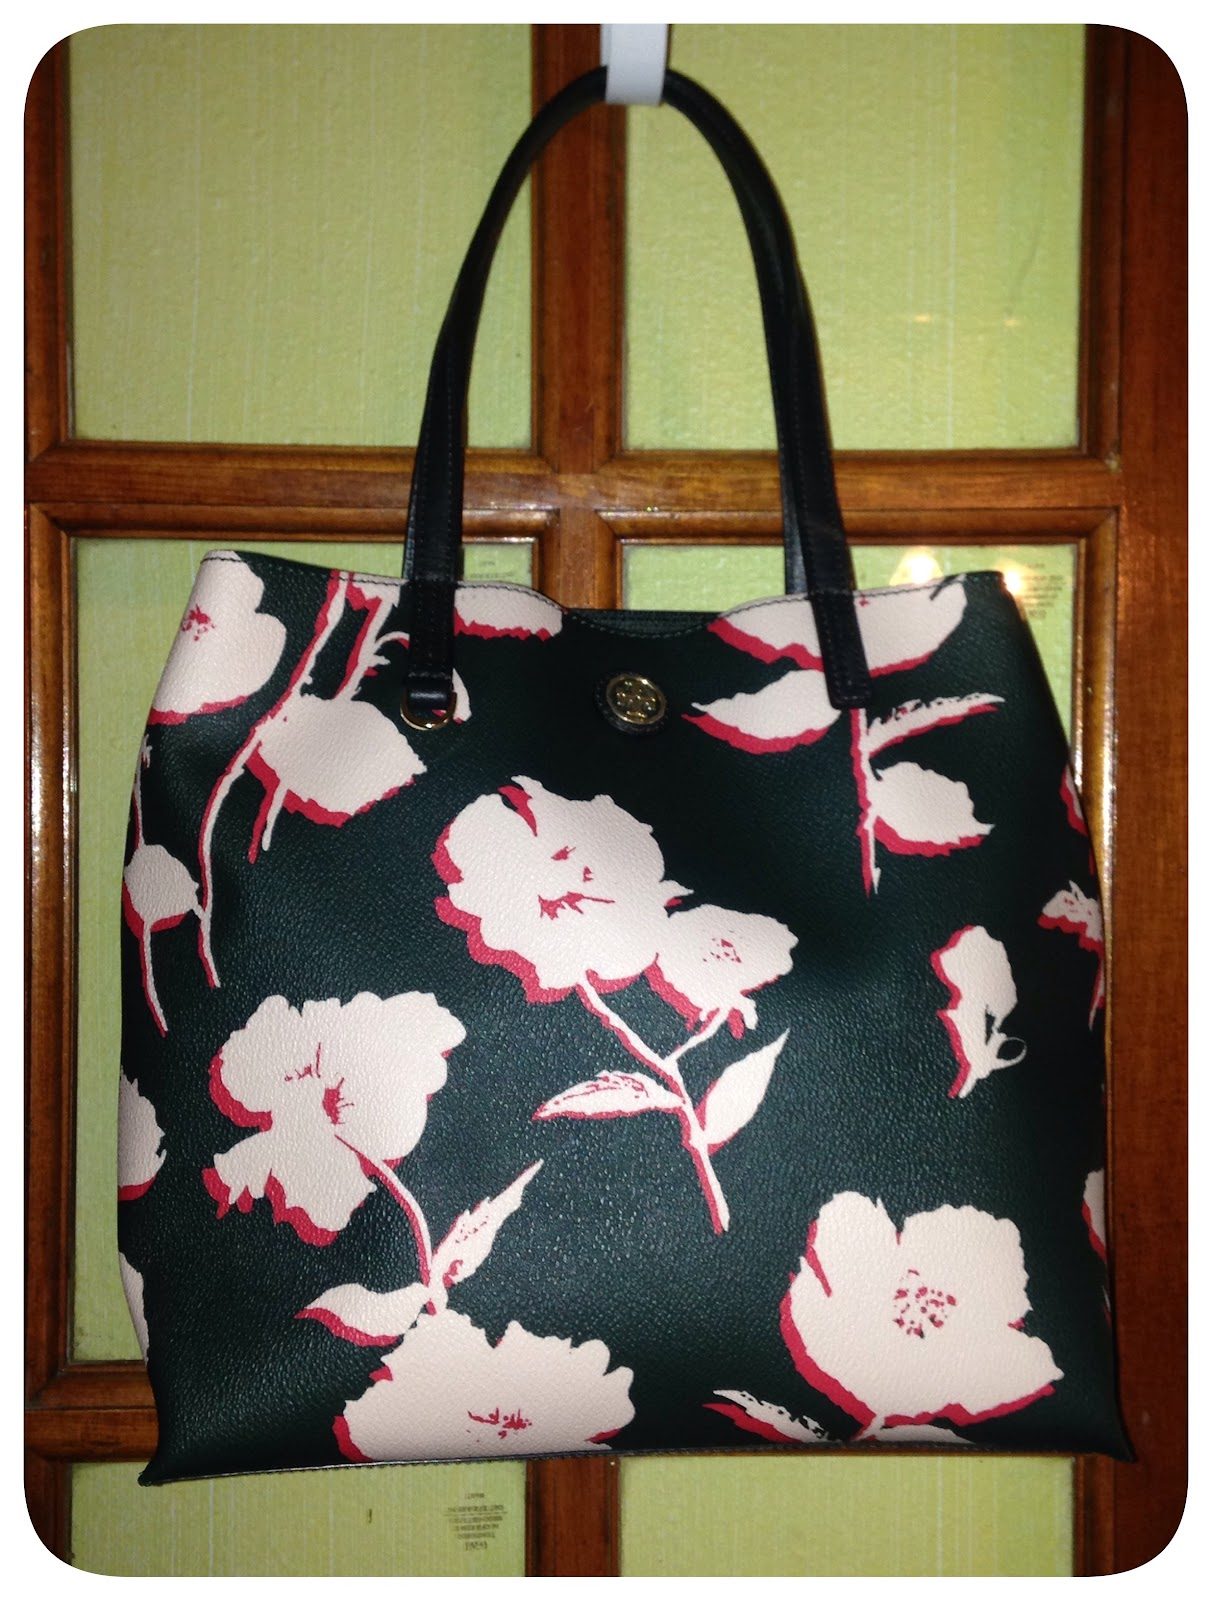 ce2e4f44f1a I have two of the larger Kerrington Totes so I wanted to give the Mini  Square Tote a try this time.